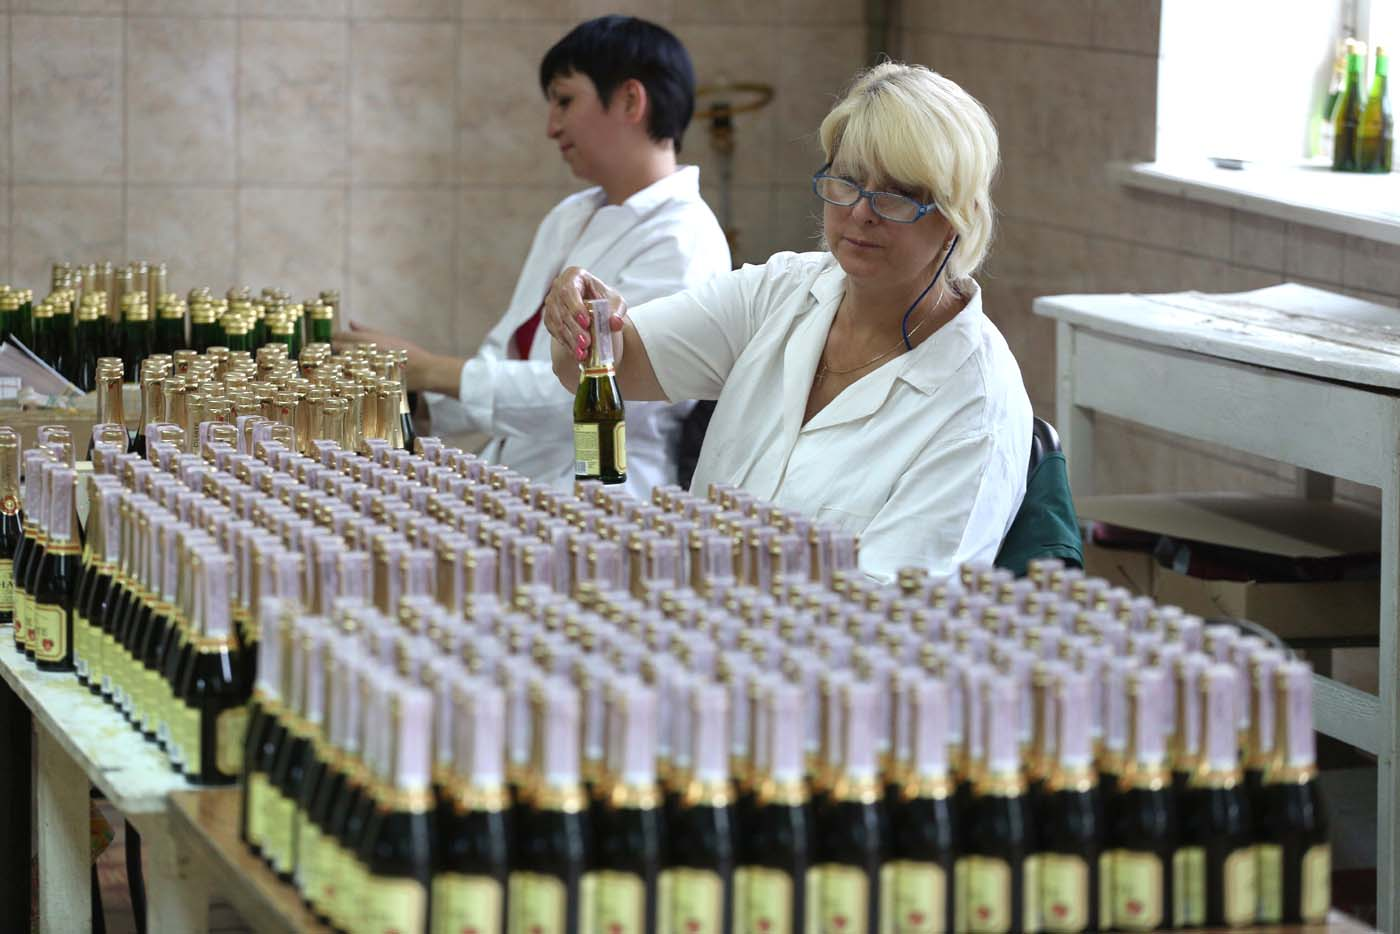 "An employee checks bottles as she works on the production line in the ""Artwinery"" winery firm in the eastern Ukrainian city of Bakhmut on July 12, 2017. The winery is located in a government-held town just two dozen kilometres (15 miles) from the frontline in Ukraine's low-level war, where the army and Russian-backed rebels continue to lob deadly artillery barrages at each other. The town spent around a month under rebel control in 2014, and in 2015 the frontline was so close that the town came under rebel shelling. But despite more than three years of fighting that has claimed some 10,000 lives, Nasyrov's employer, Artwinery, has never stopped production. / AFP PHOTO / Aleksey FILIPPOV"